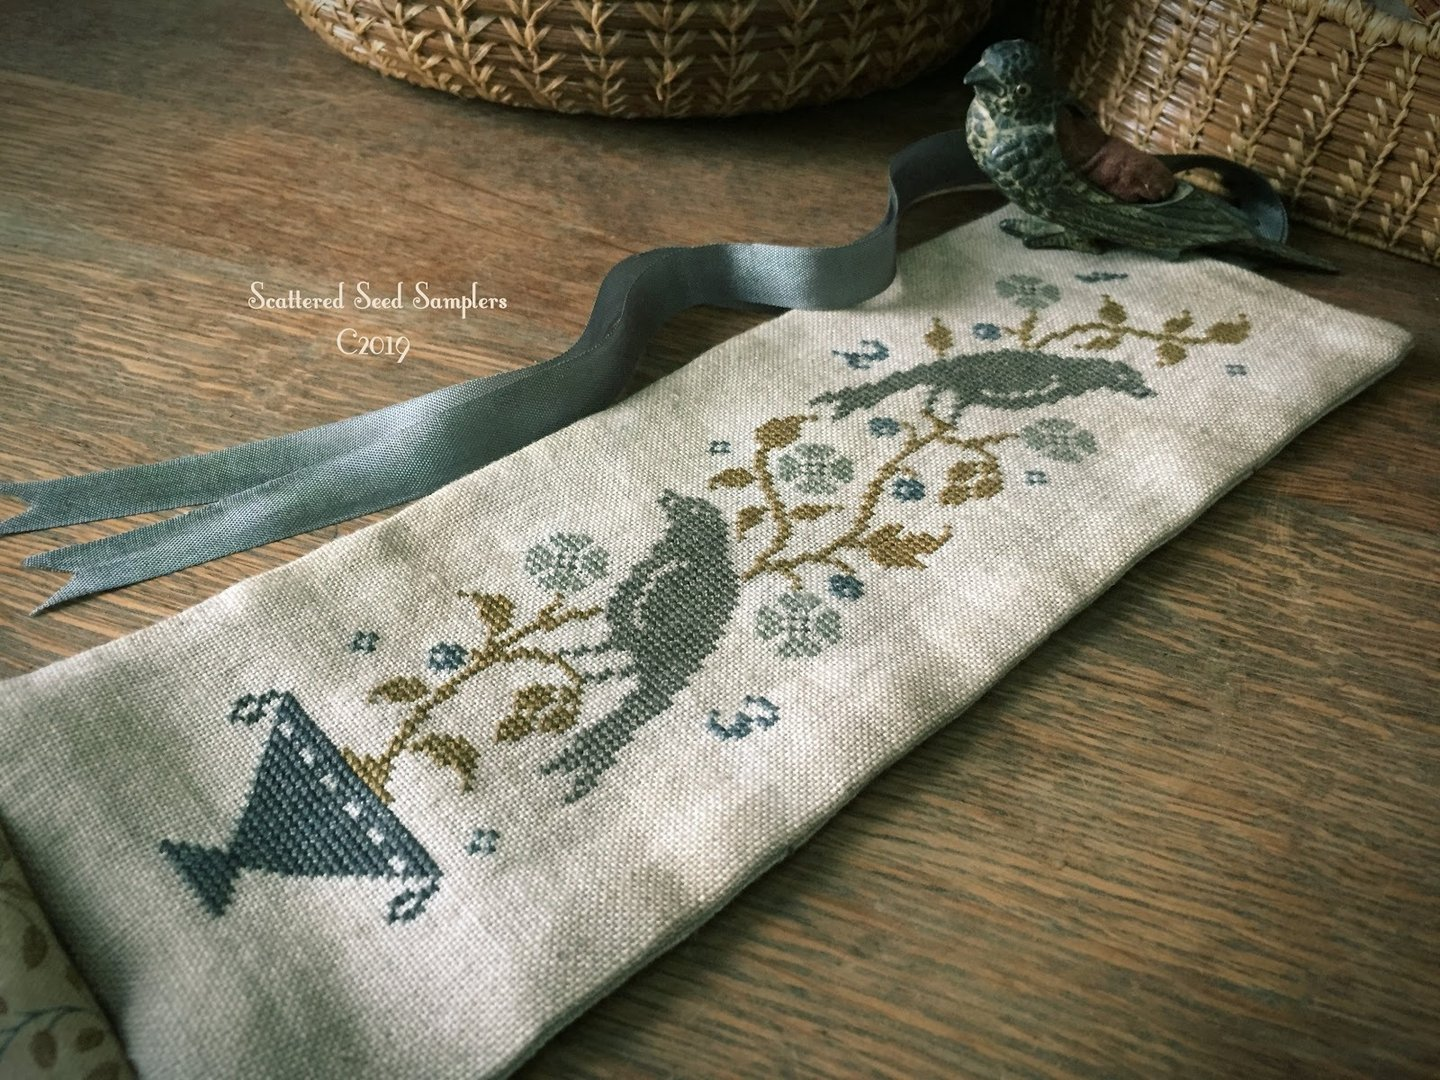 Scattered Seed Samplers - Fruit of the vine, needle roll